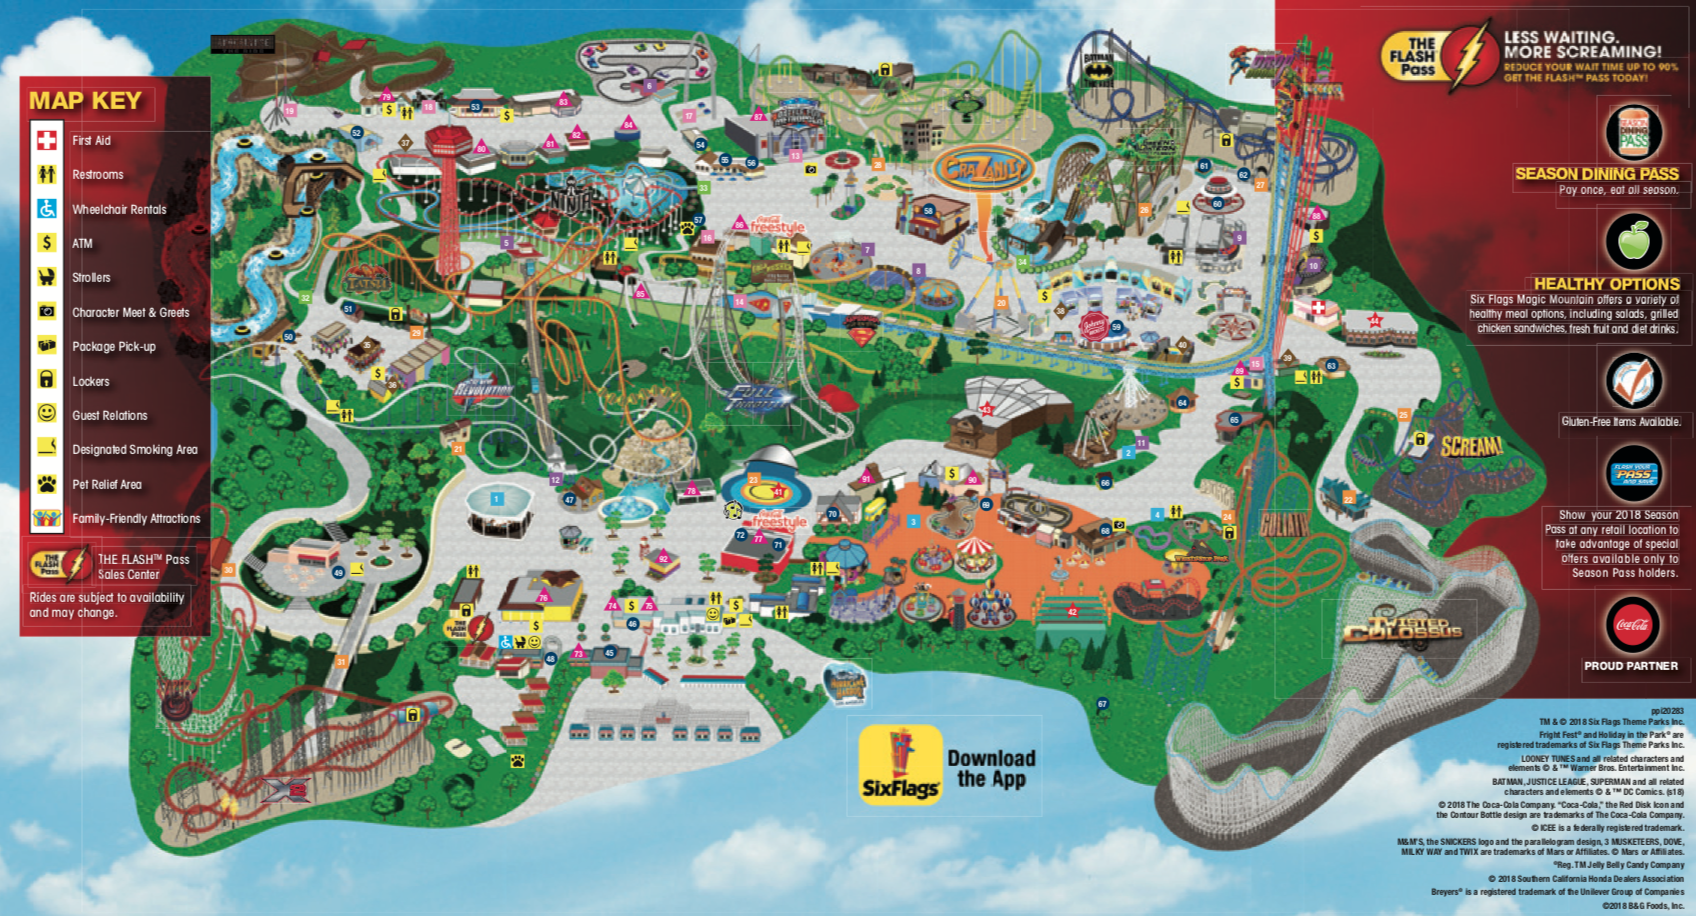 SIX FLAGS MAGIC MOUNTAIN PARK MAP, ALL CREDIT TO SIX FLAGS